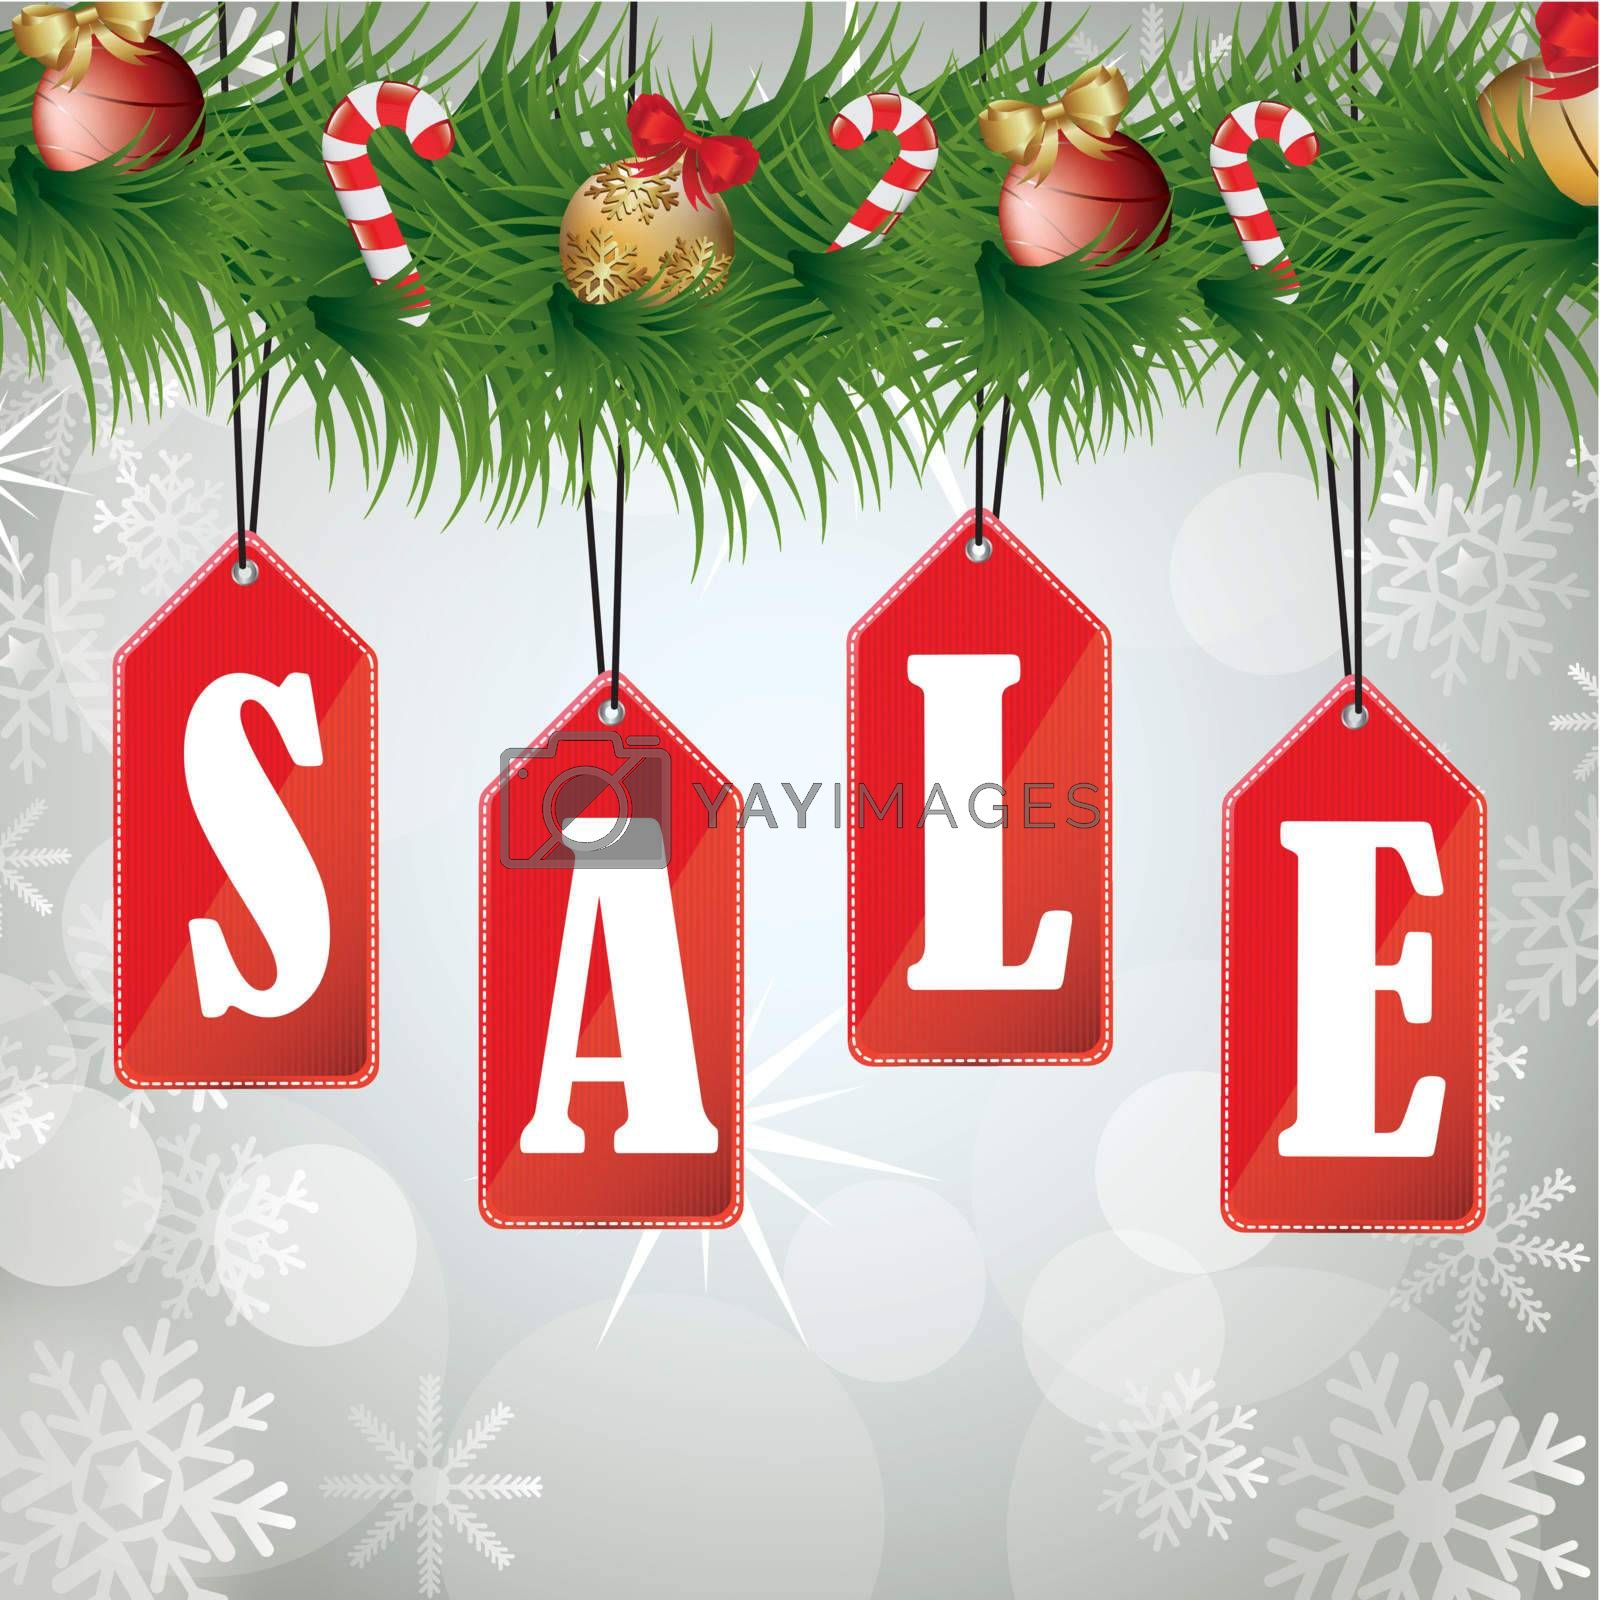 Christmas sales background with a wreath hanging labels